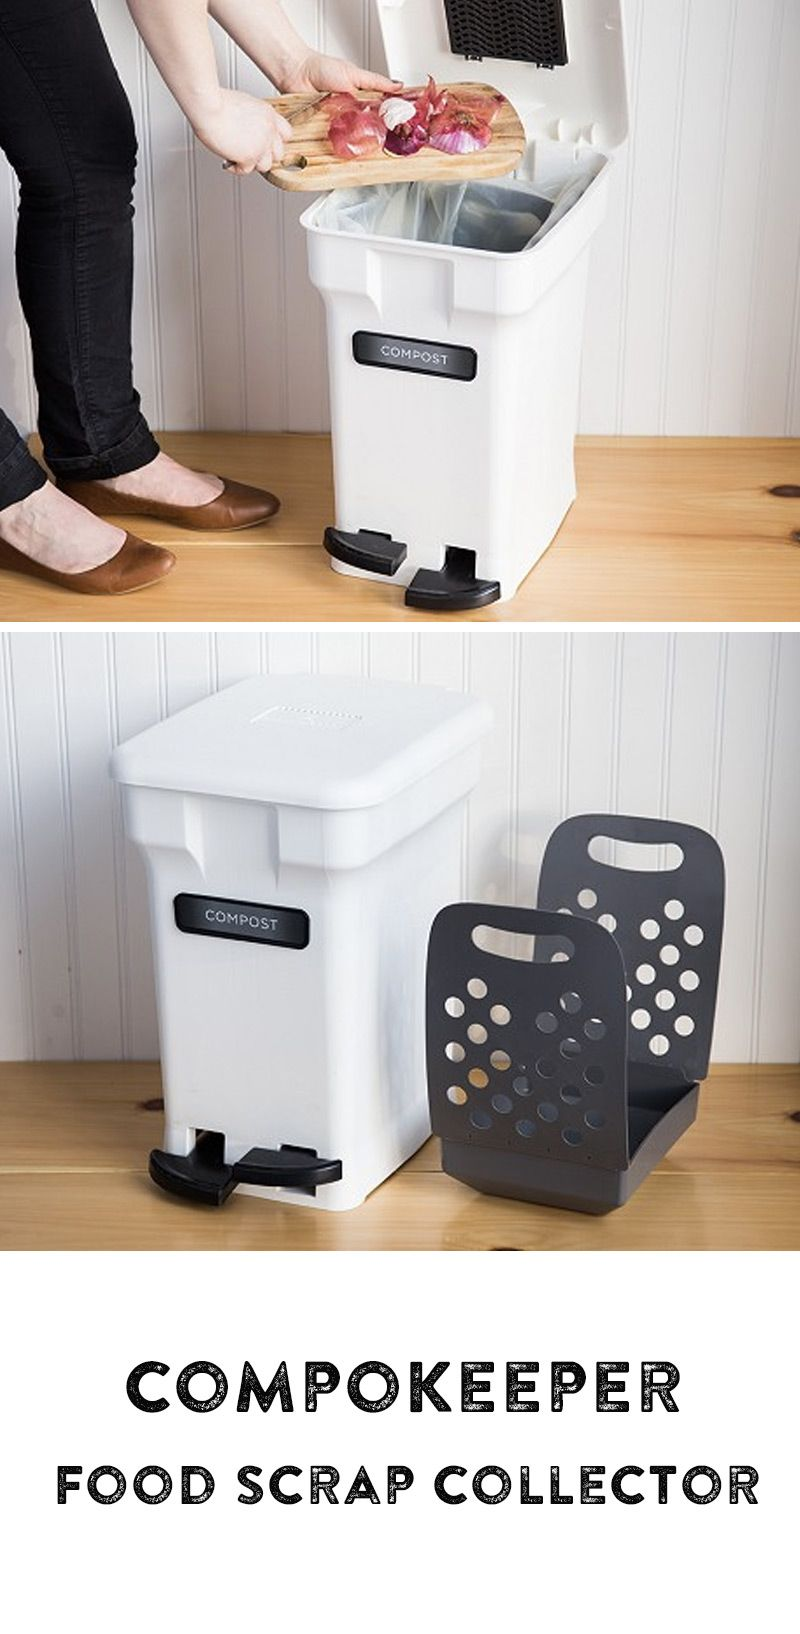 The CompoKeeper Food Scrap Collector Is An Innovative Kitchen Compost Bin  That Keeps Odors In And Bugs Out. Hands Free With Interlocking Bag Clamps  And ...